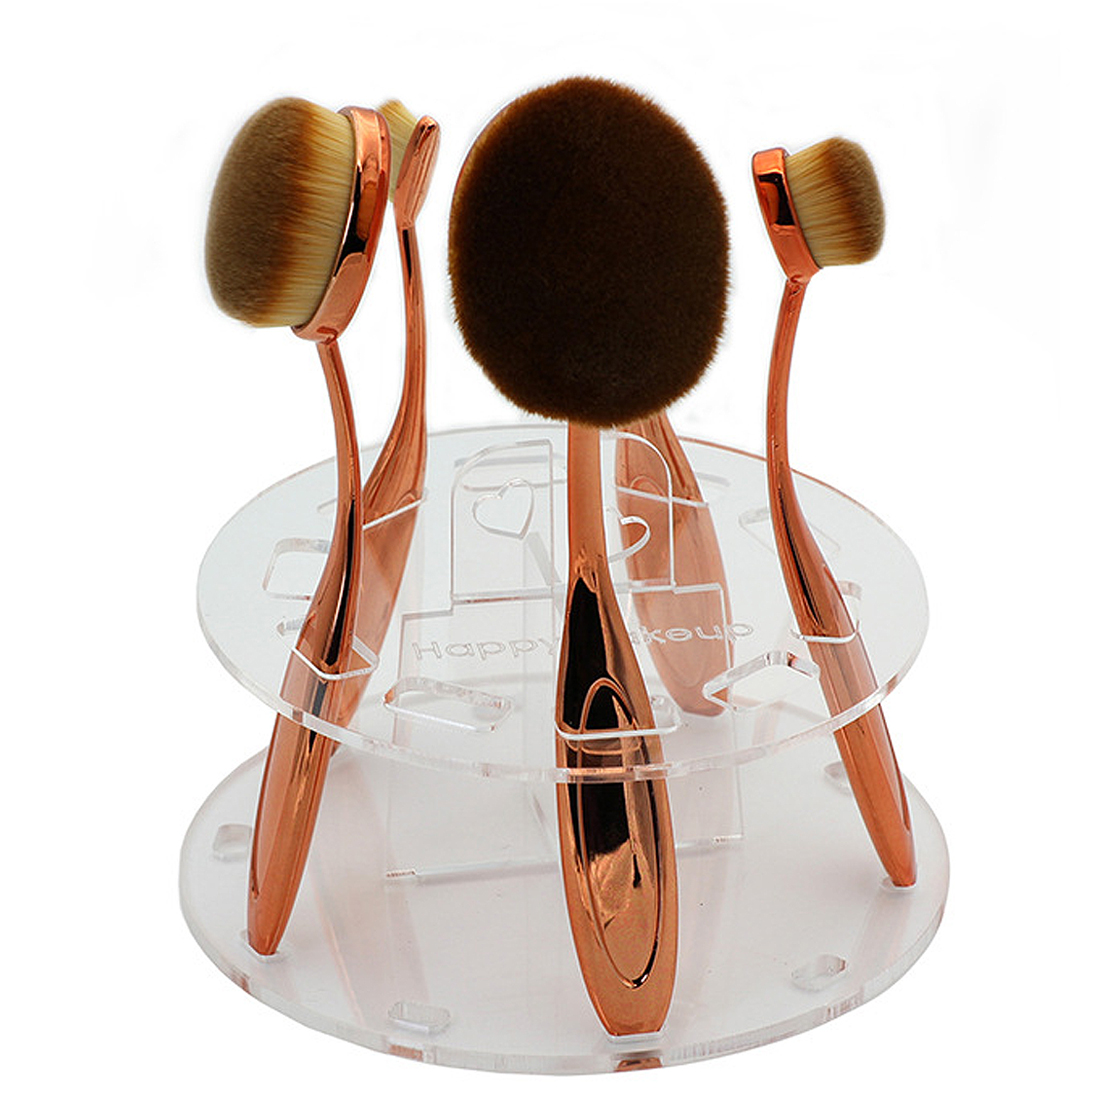 Clear Acrylic 10 Hole Toothbrush Makeup Brush Holder Drying Rack Stand Cosmetic Display Shelf Tool